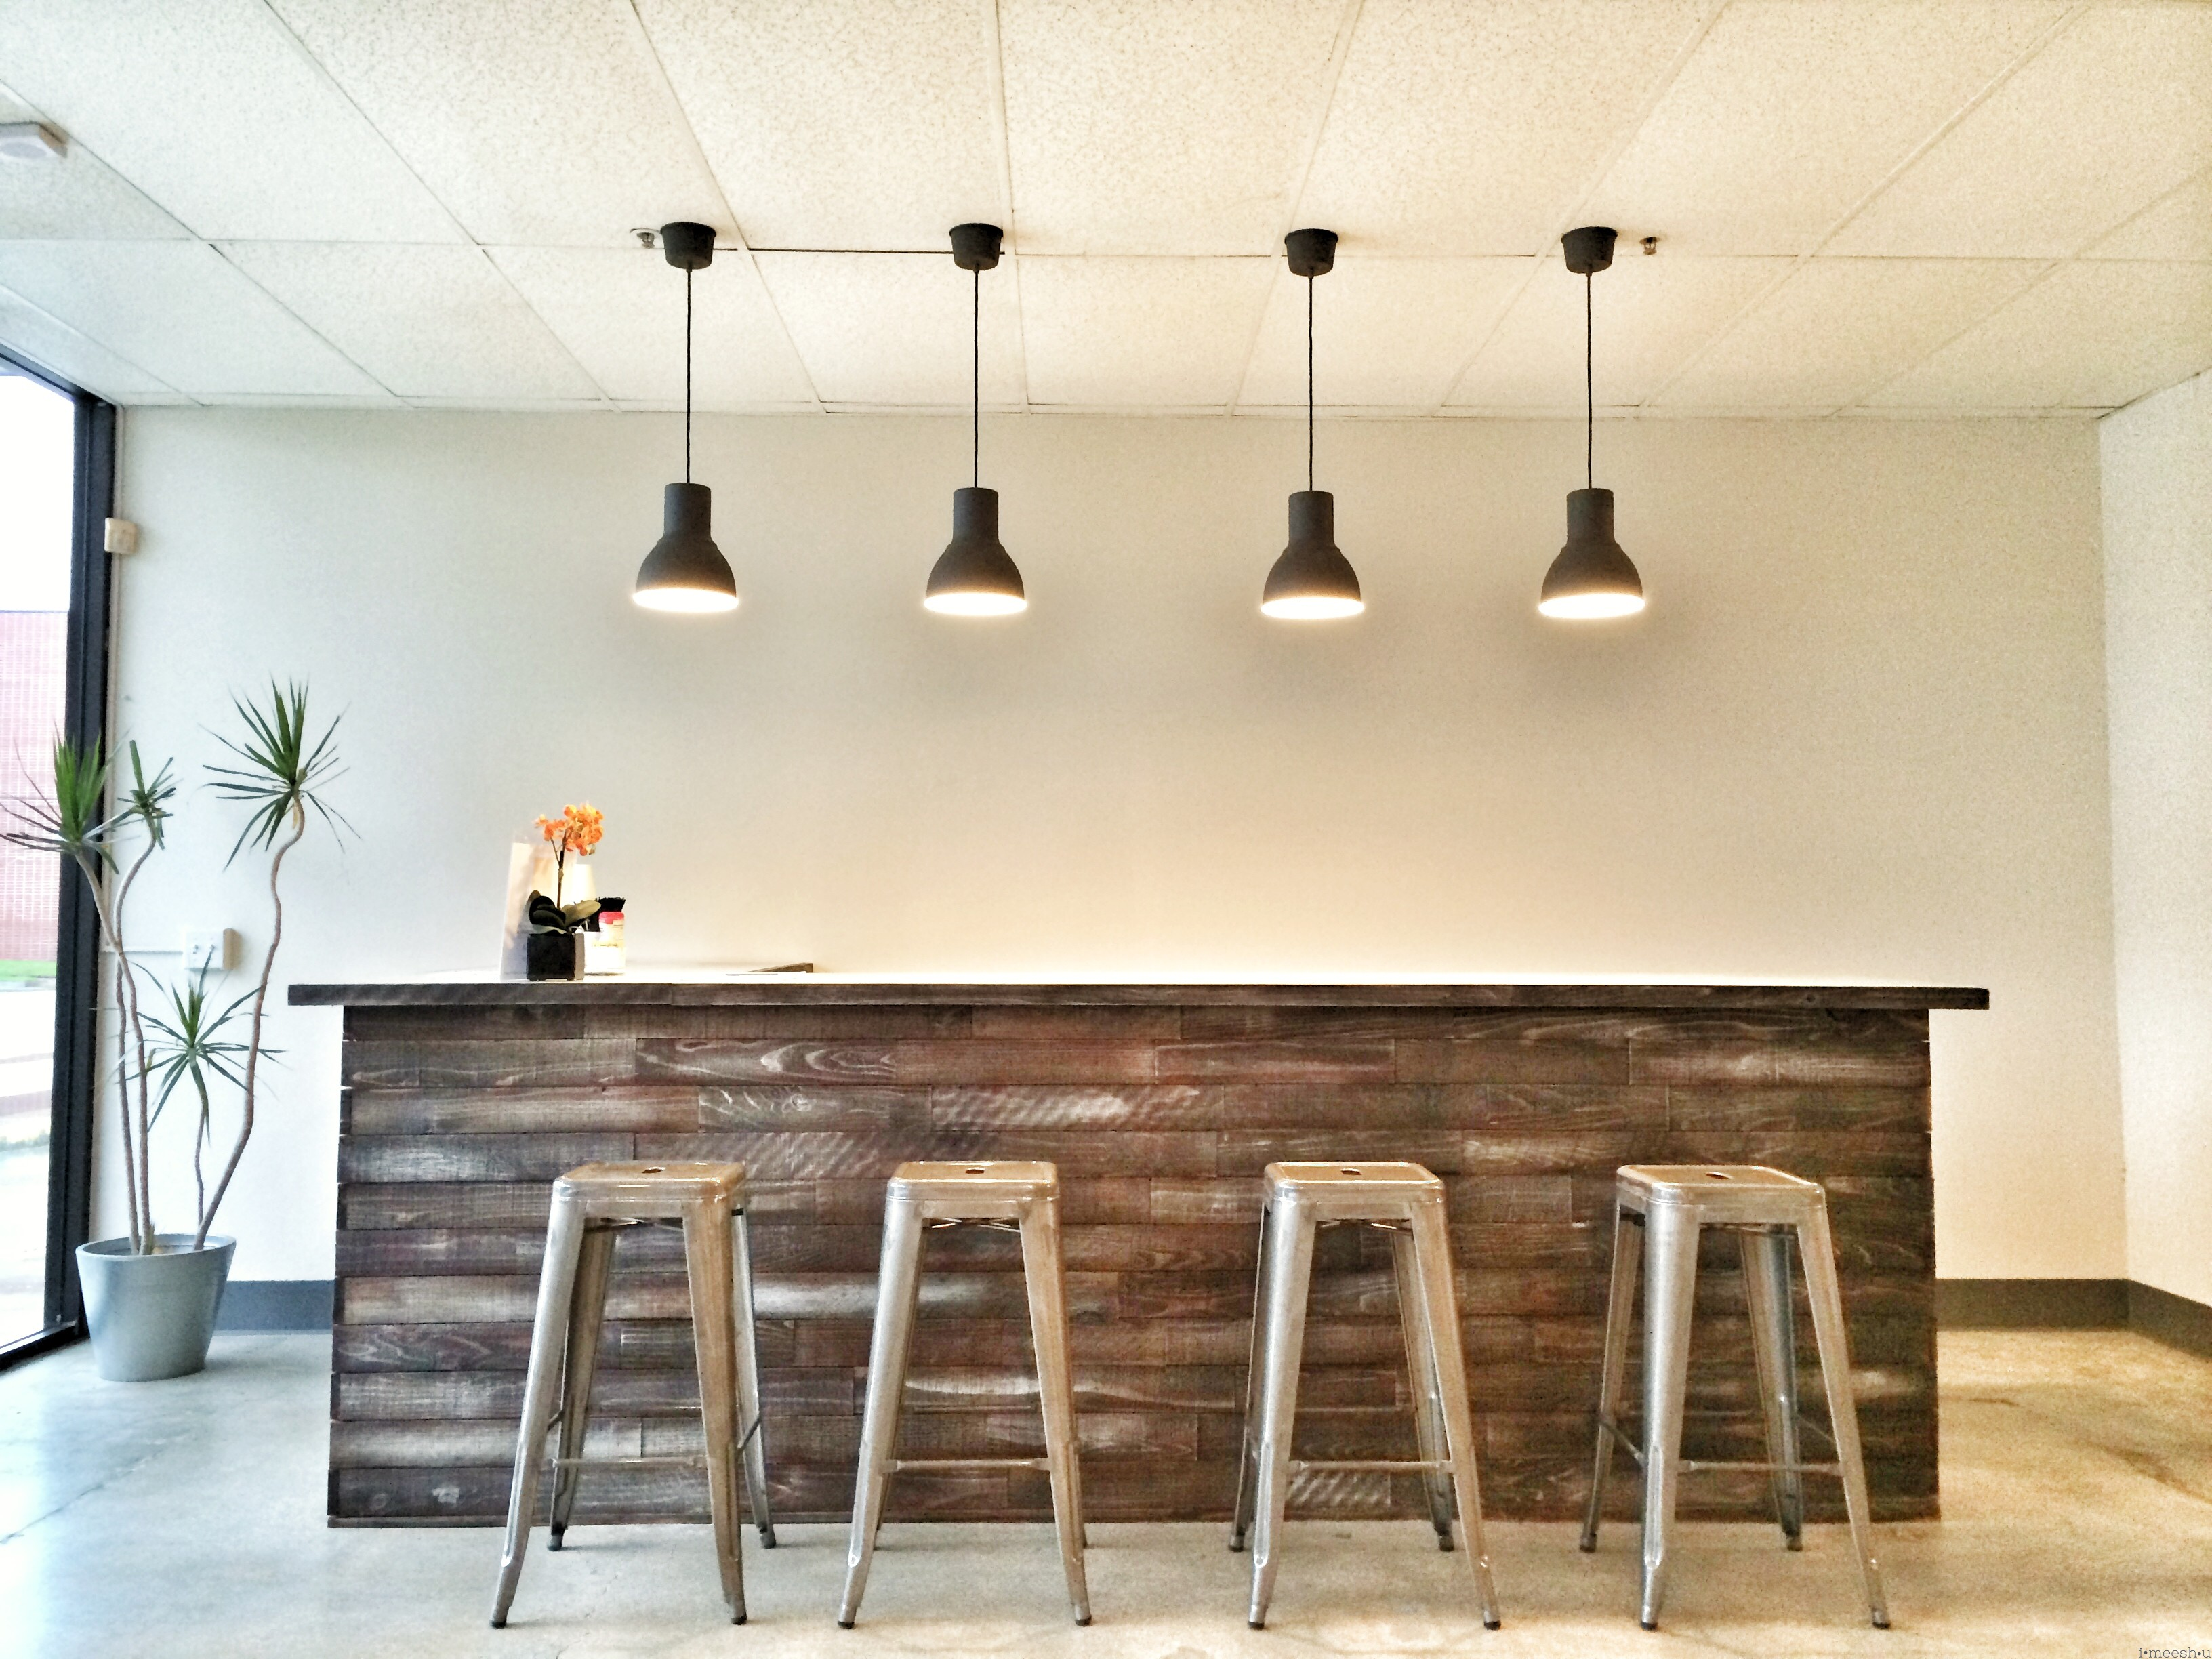 Rustic Furniture Stain Imeeshucom How To Paint And Stain A Bar To Look Like Weathered Wood